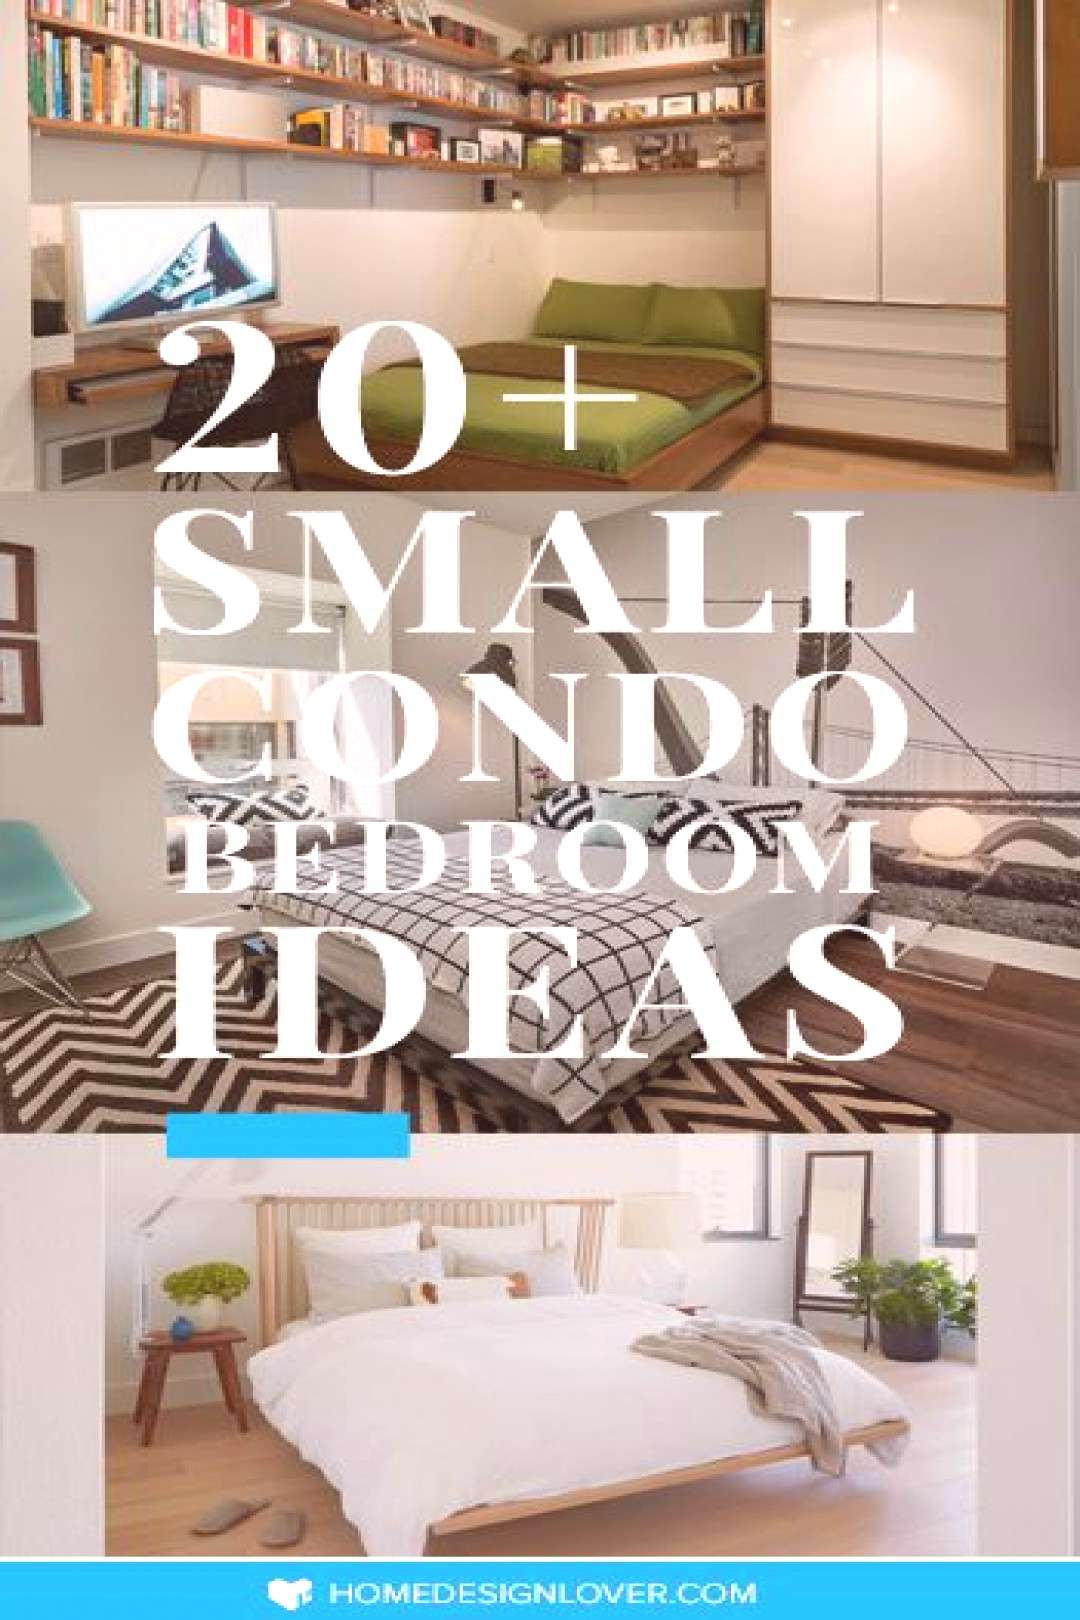 Small Condo Bedroom Ideas Seeking inspiration for your next condo bedroom? This idea collection of